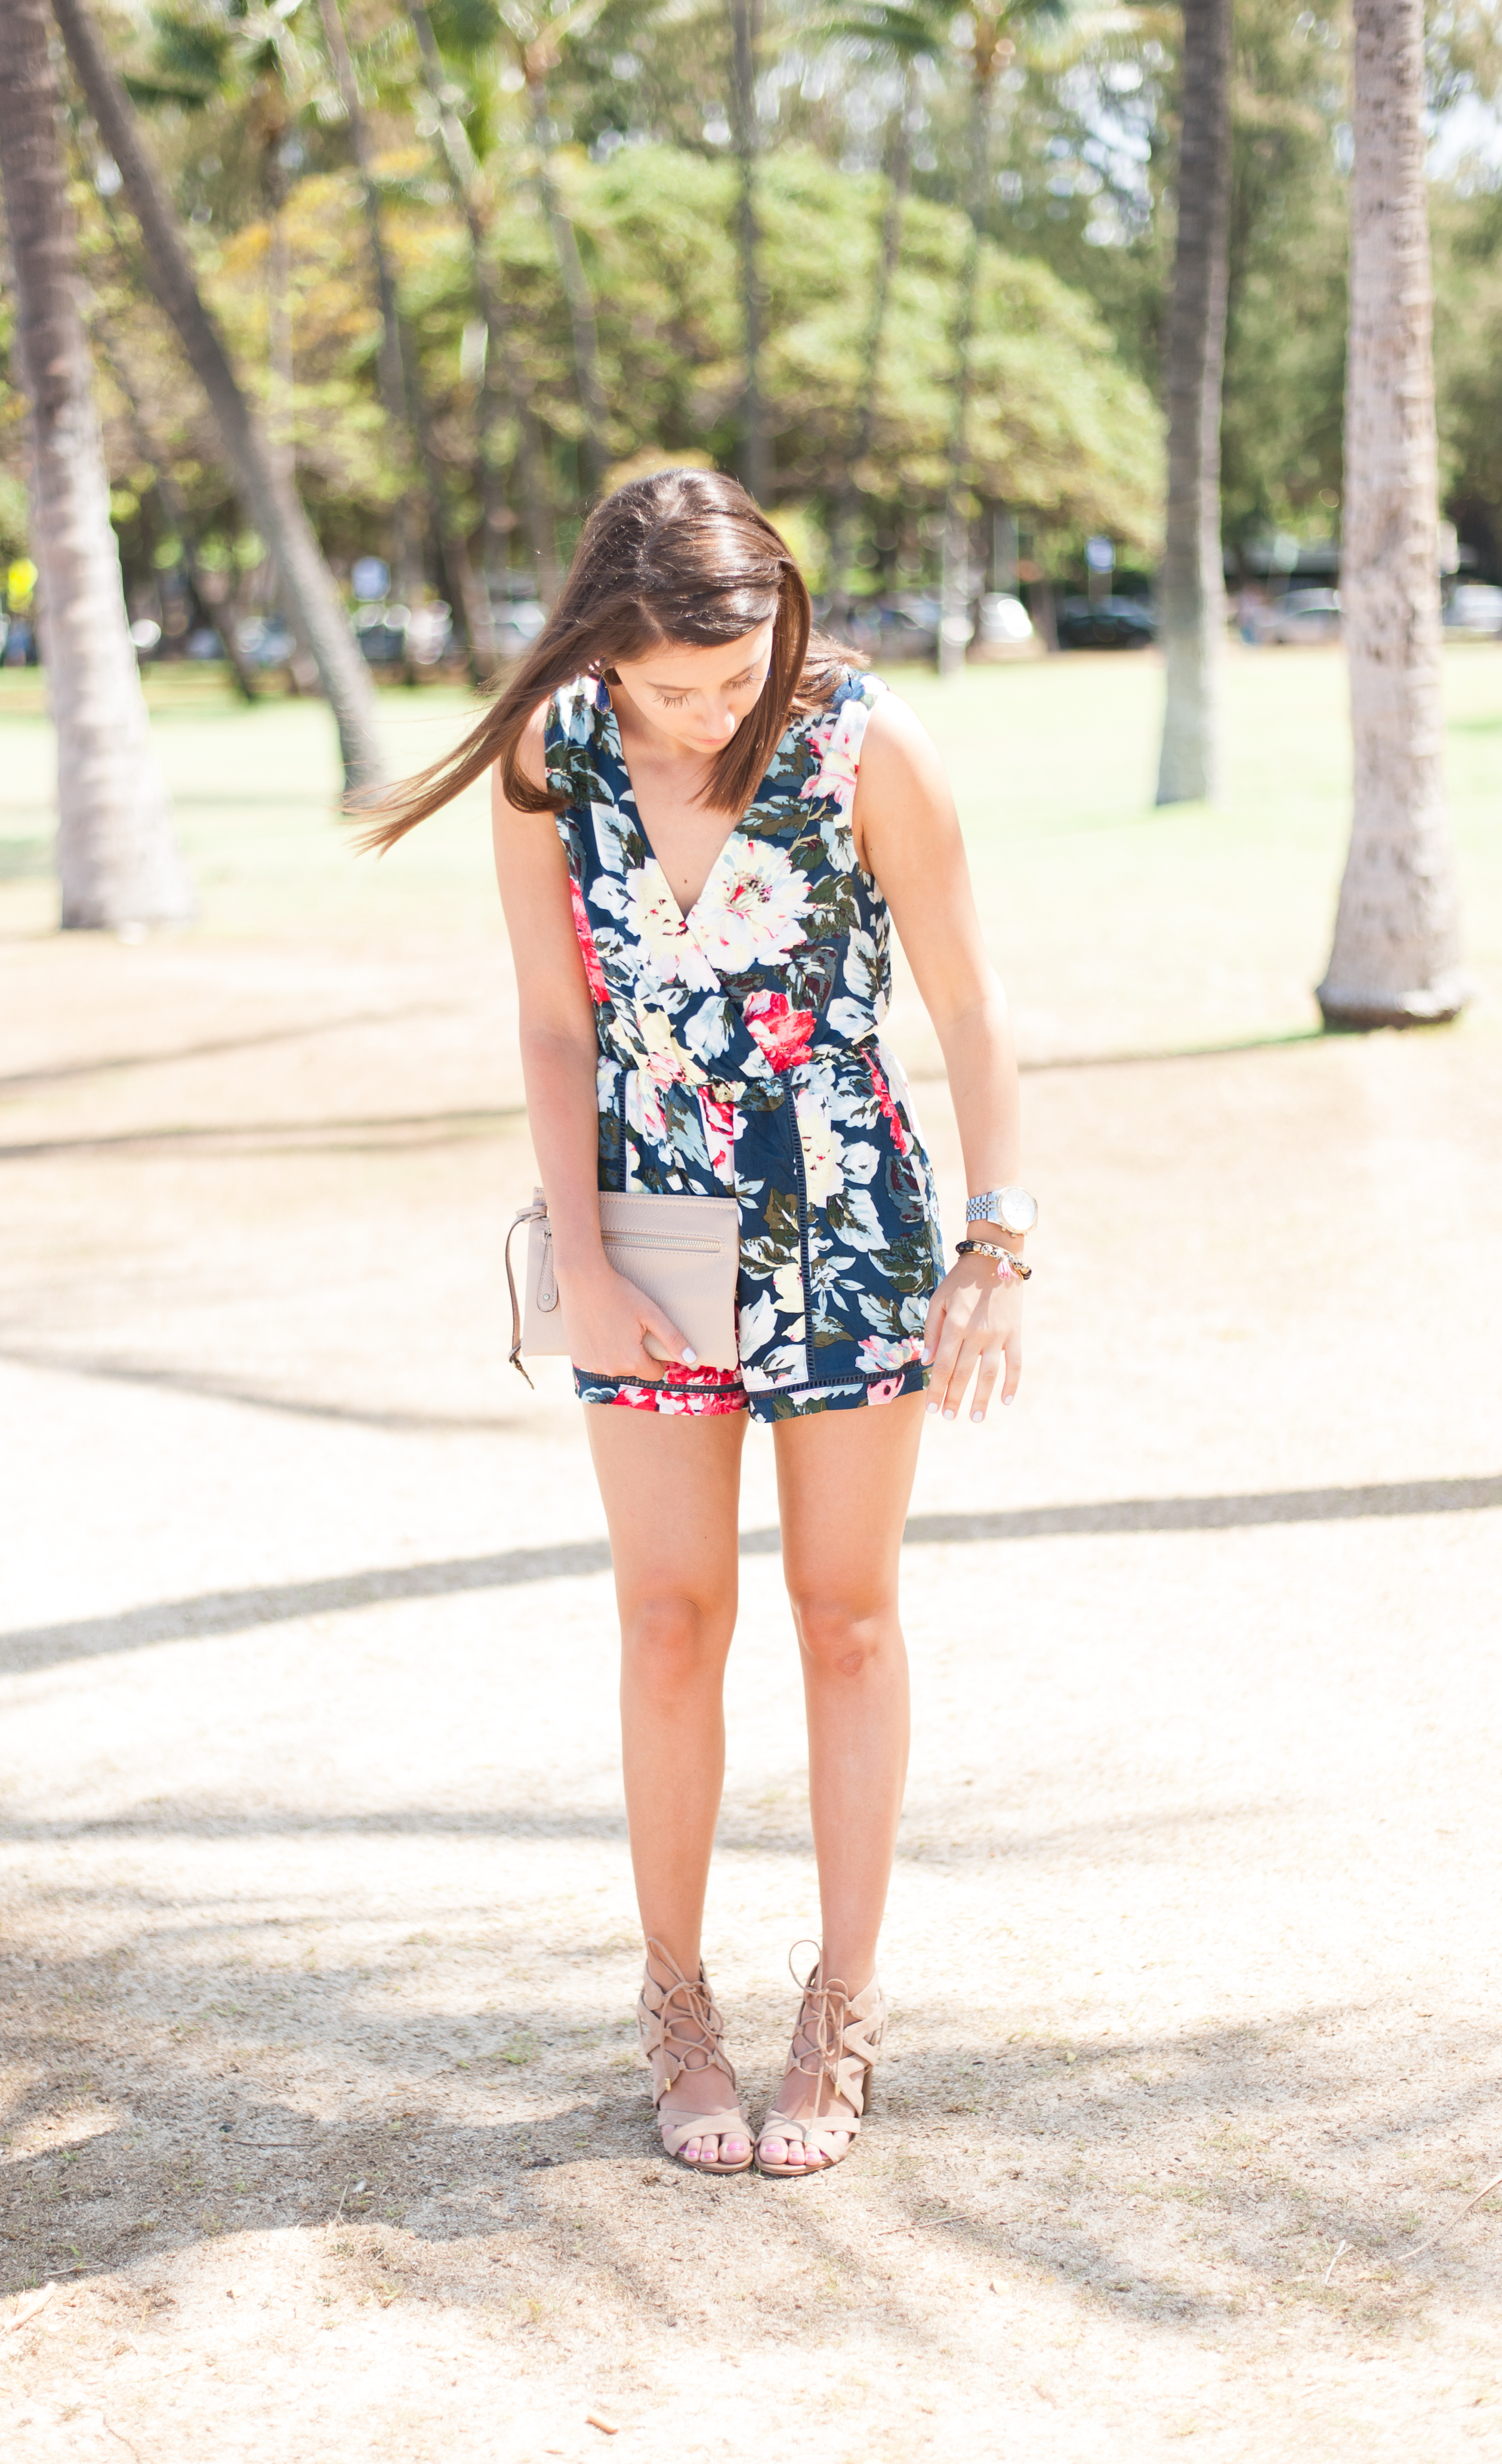 Dress Up Buttercup // A Houston-based fashion and inspiration blog developed to daily inspire your own personal style by Dede Raad | Hawaii Itinirary